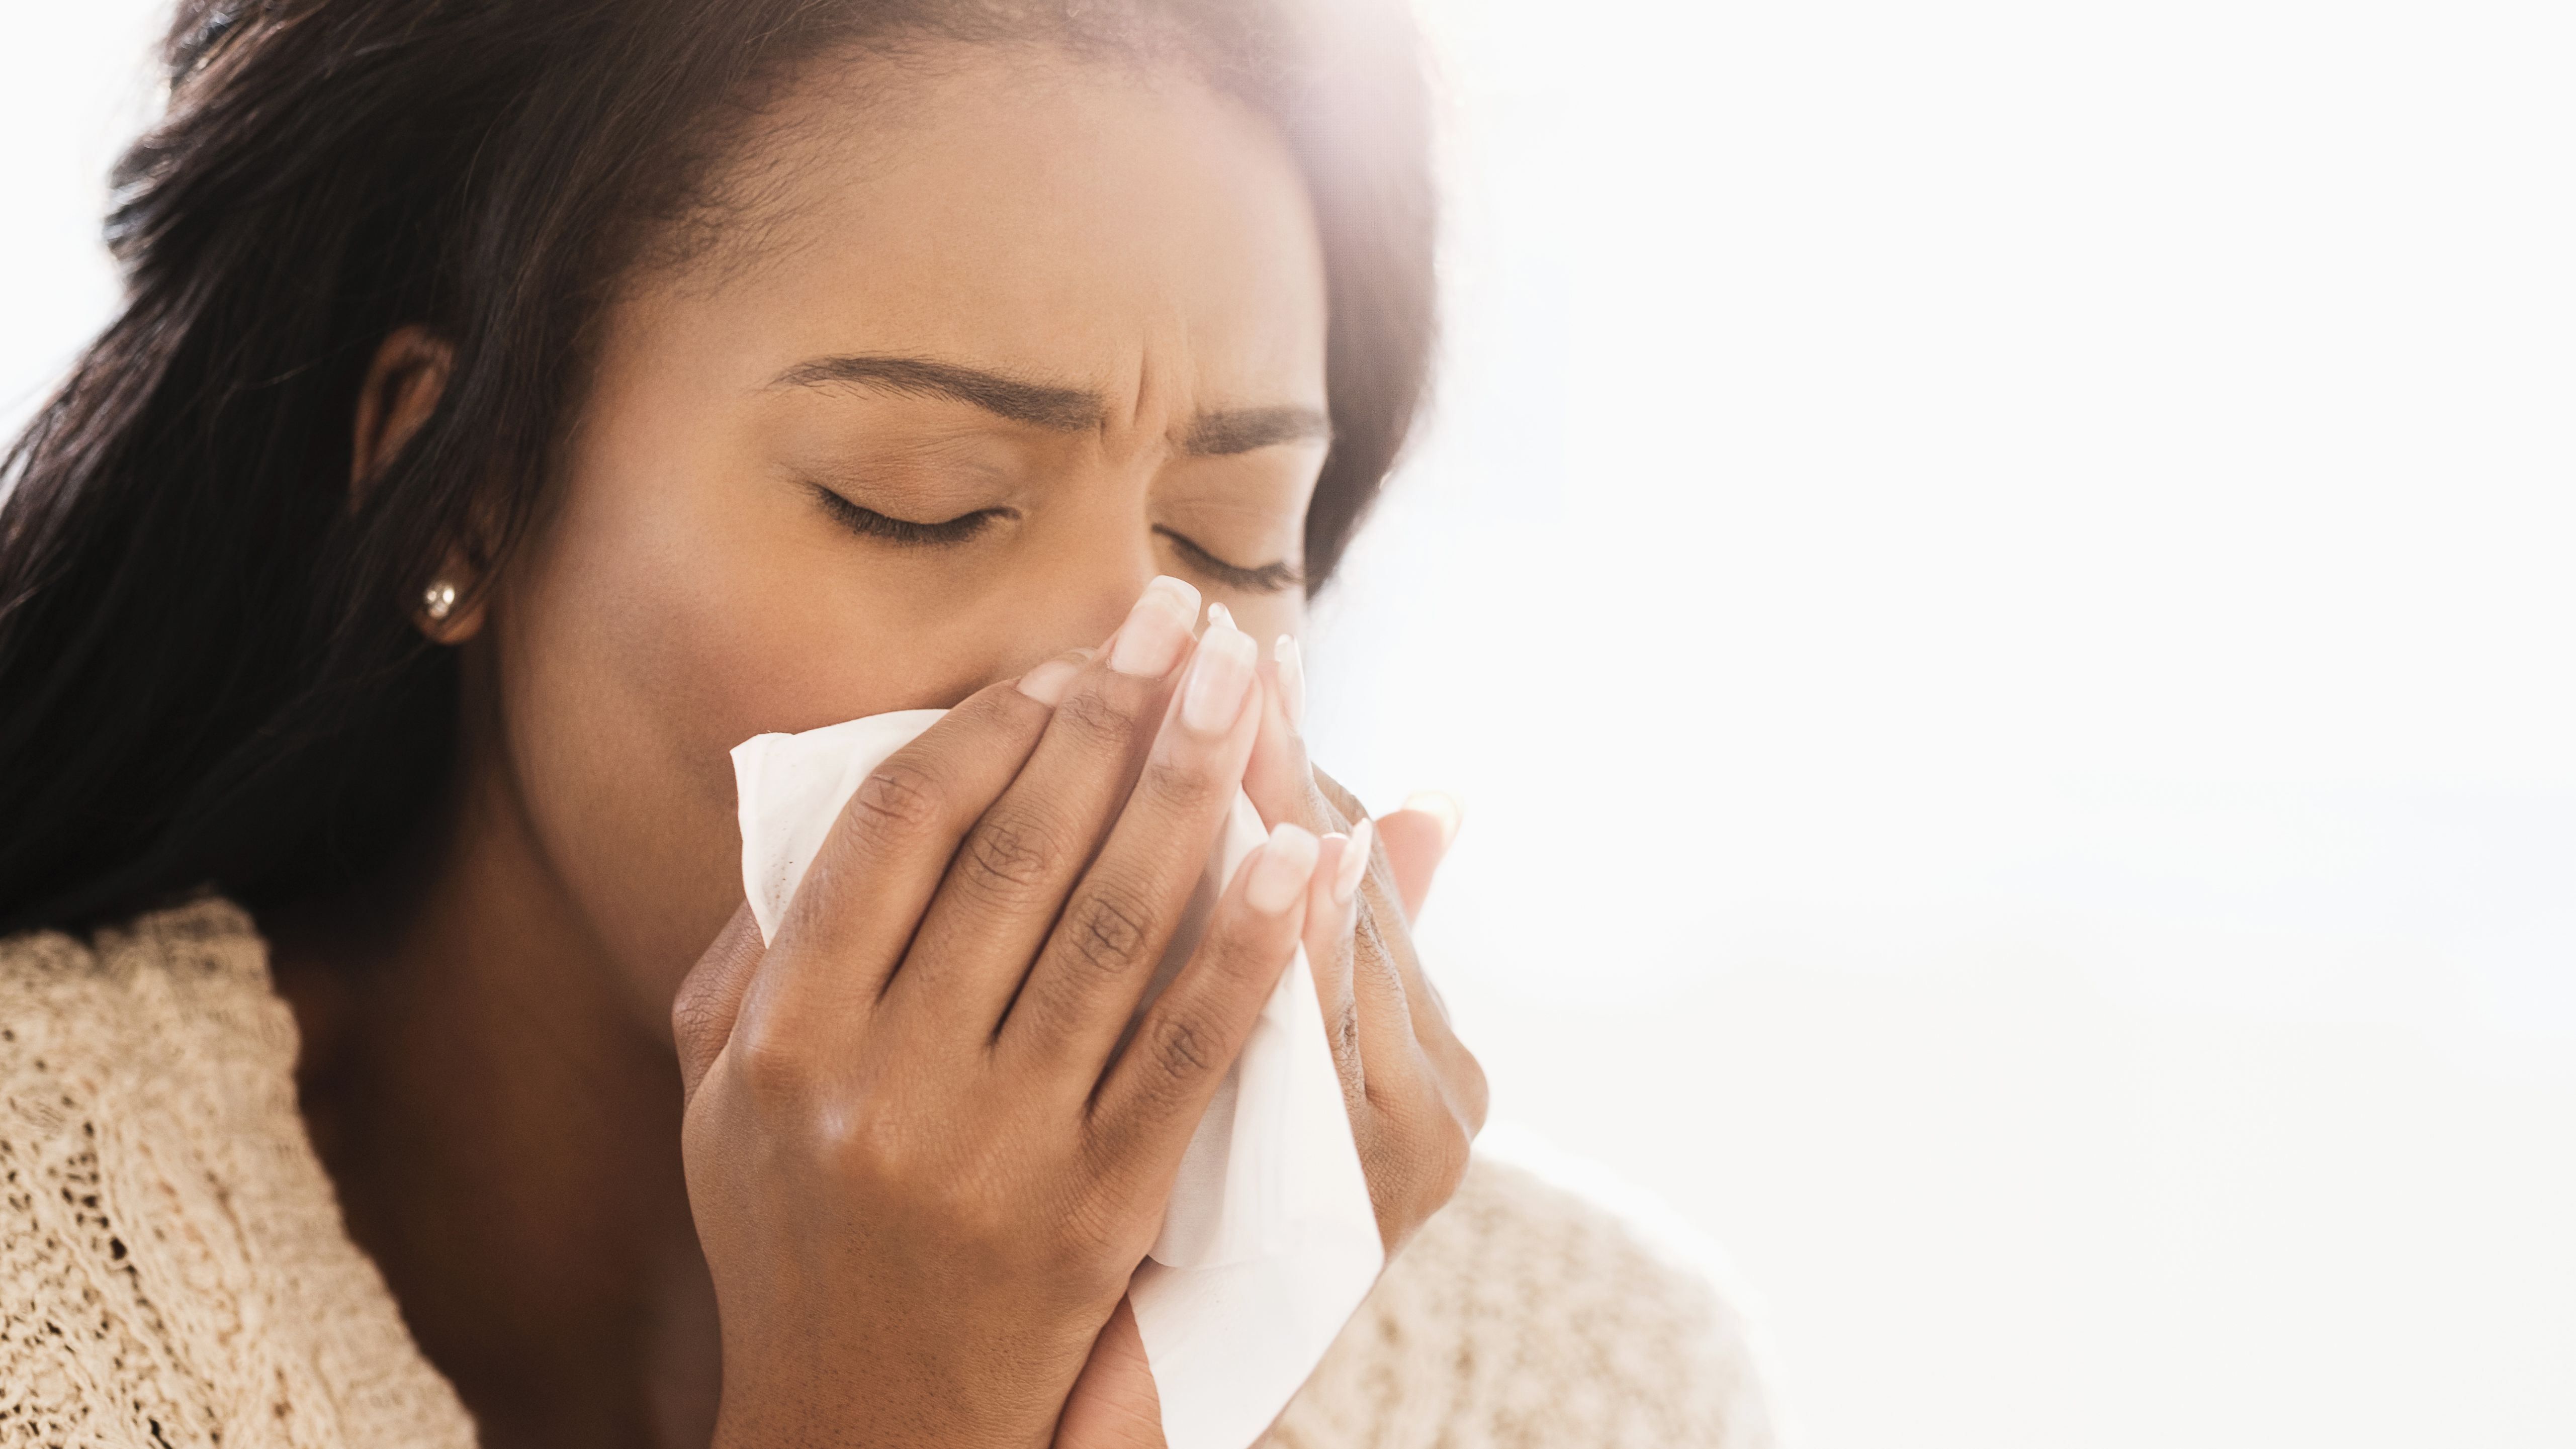 Is Hydroxyzine Effective for Treating Allergies?